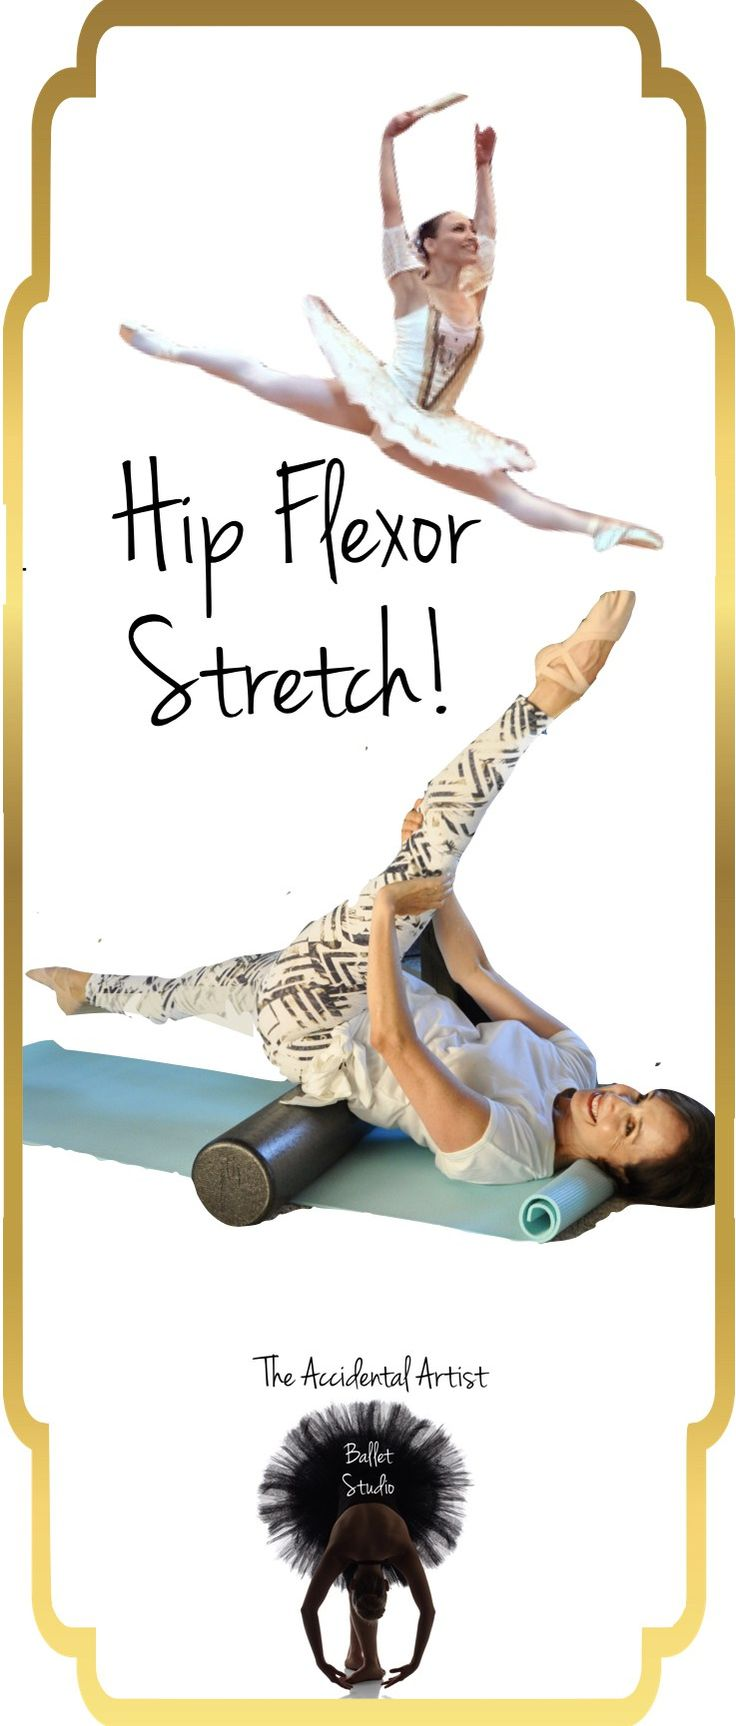 Just in case you need some motivation, here is a hip flexor stretch that I made up for myself. Sometimes I get tired on the old lunge stretch for the hip flexor and found this is really great. You can control the amount of stretch by pulling your upper leg to your chest. It will act as the lever for your stretch.To increase the effectiveness of the stretch, engage your abdominal muscles to help control the alignment of your pelvis. #ballet #stretching